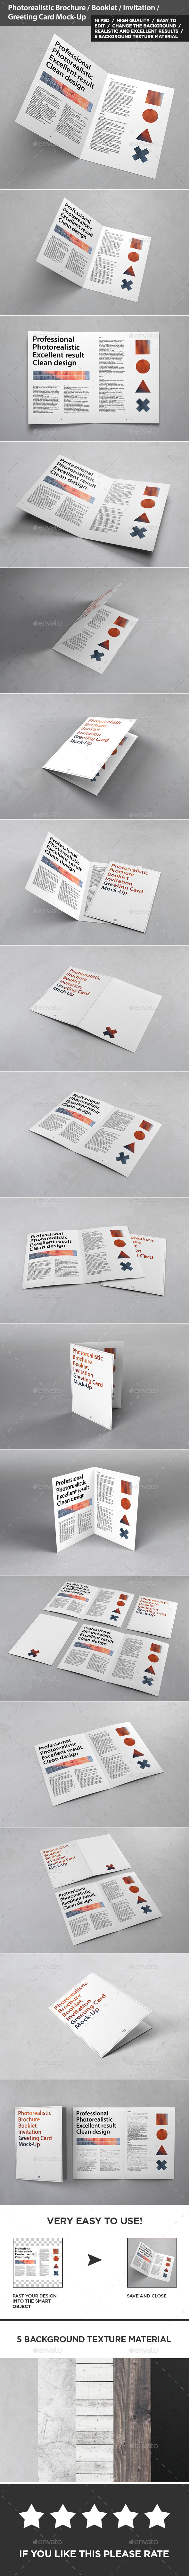 Brochure / Invitation / Greeting Card Mock-Up - Brochures Print